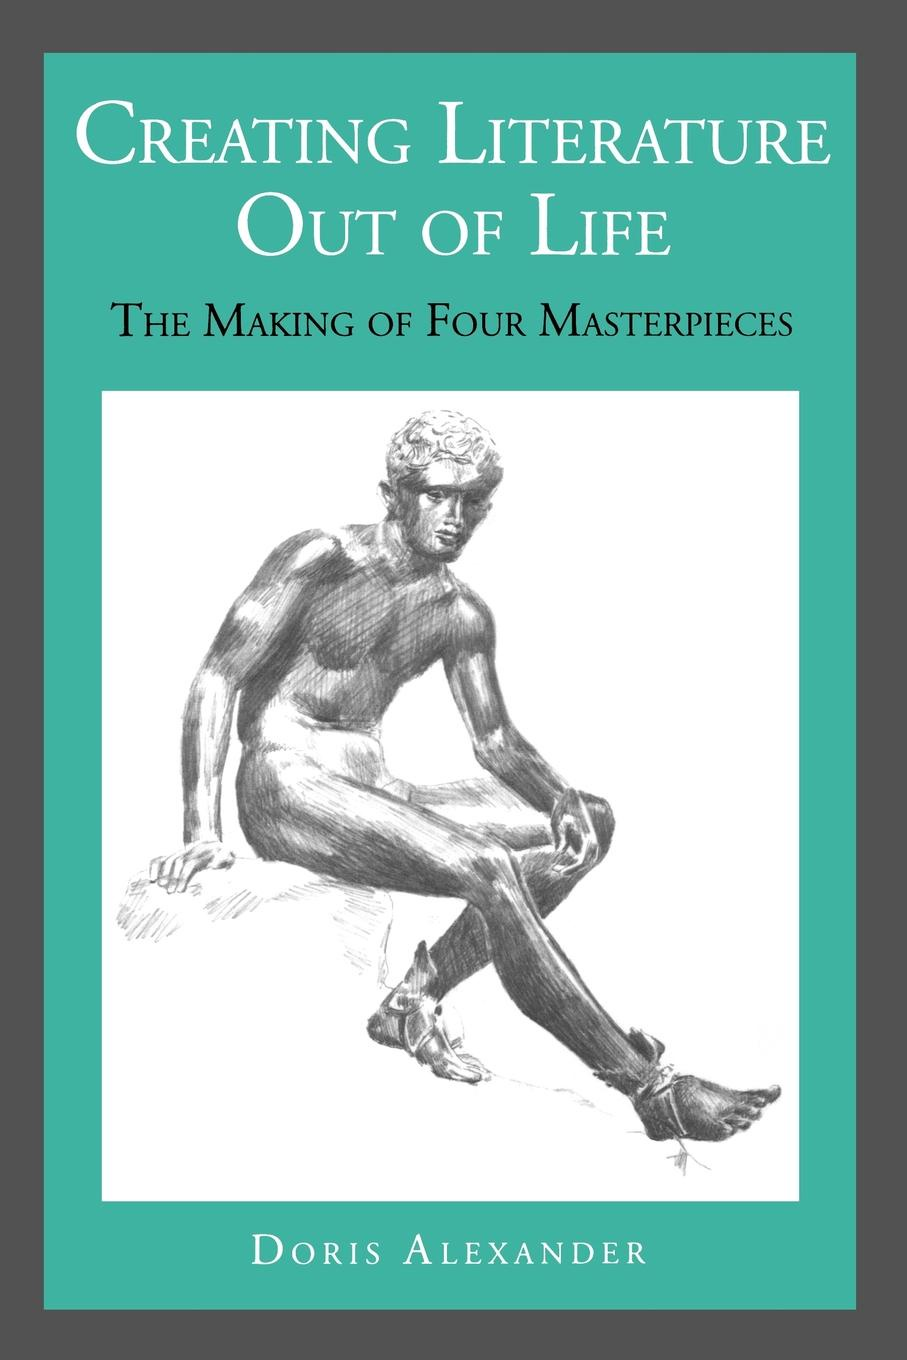 Creating Literature Out of Life. The Making of Four Masterpieces